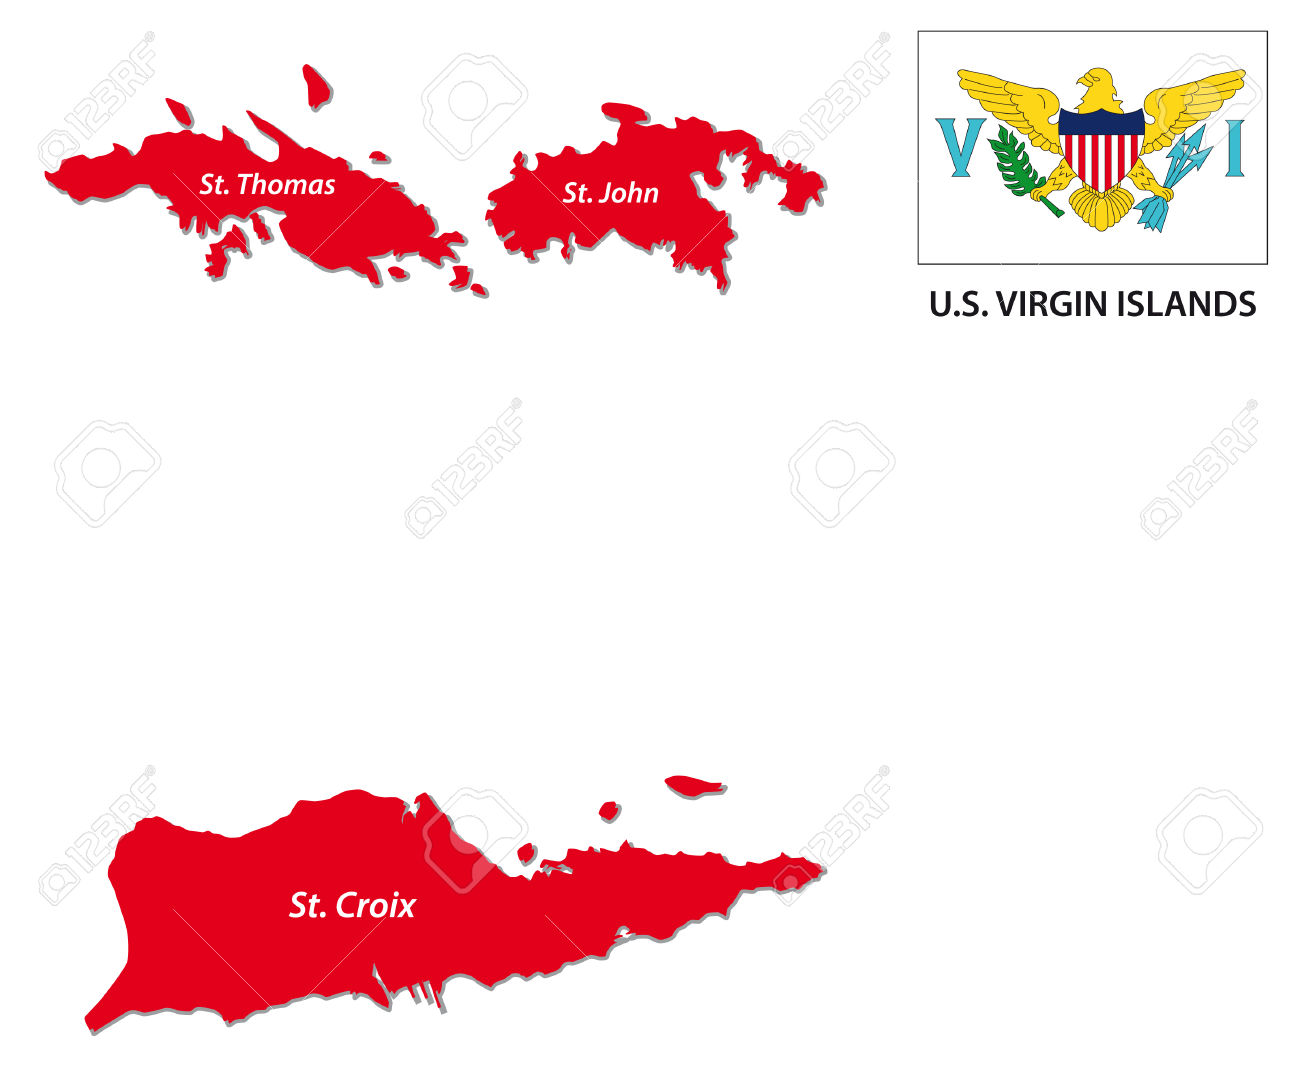 US Virgin Islands Map With Flag Royalty Free Cliparts, Vectors.